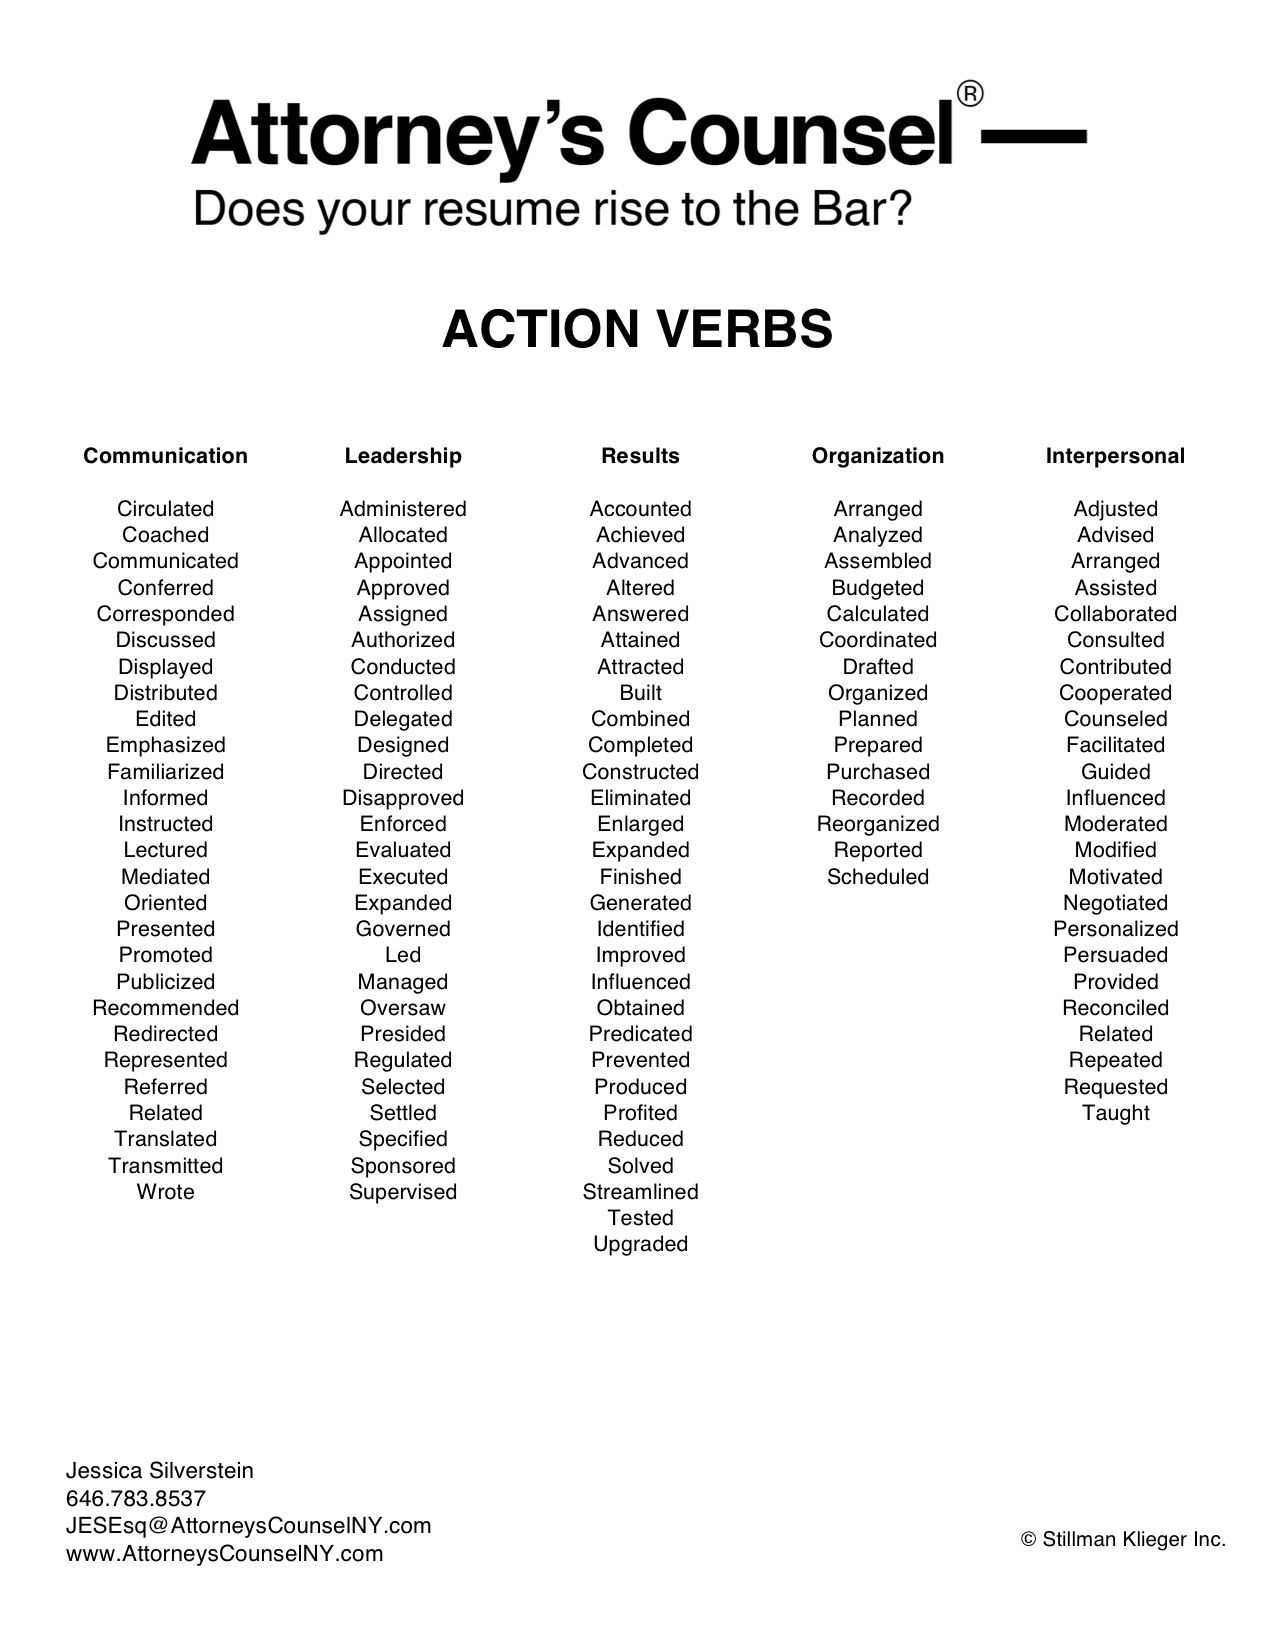 Civil Litigation Paralegal Resume Just A Few Action Verbs To Use On Your Legal Resume Job